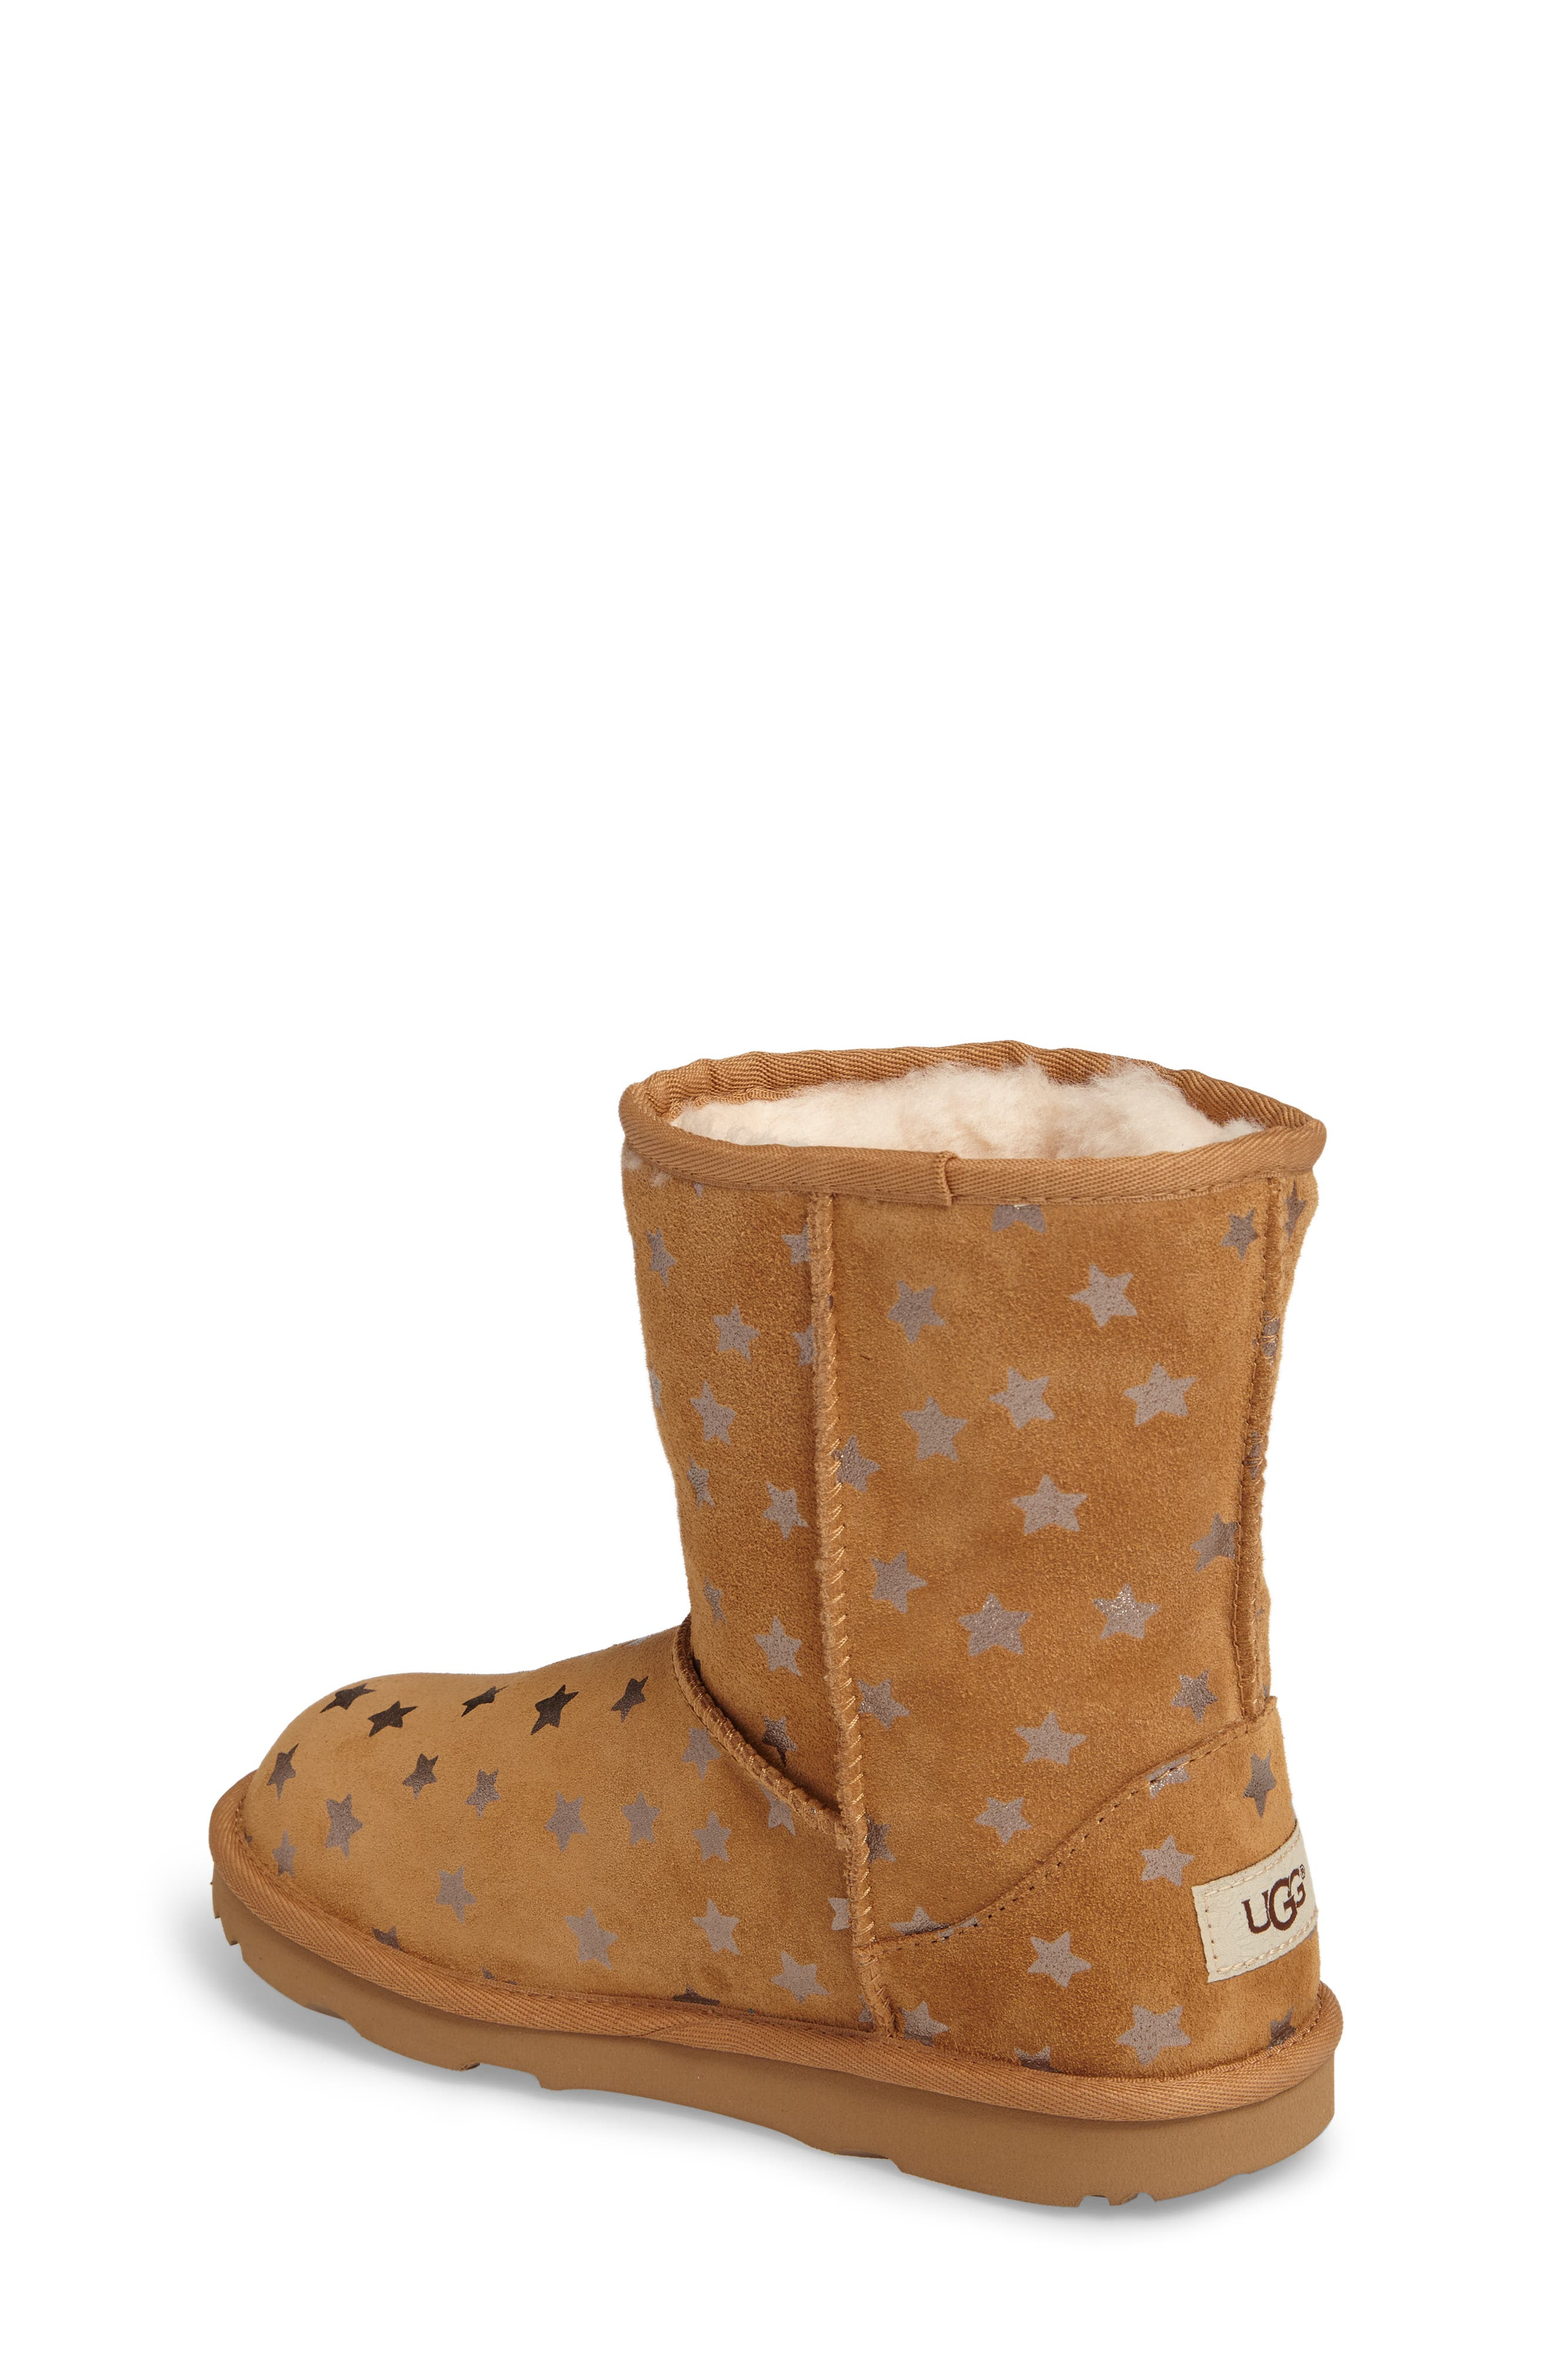 UGG<SUP>®</SUP>, Classic Short II Water Resistant Stars Boot, Alternate thumbnail 2, color, CHESTNUT